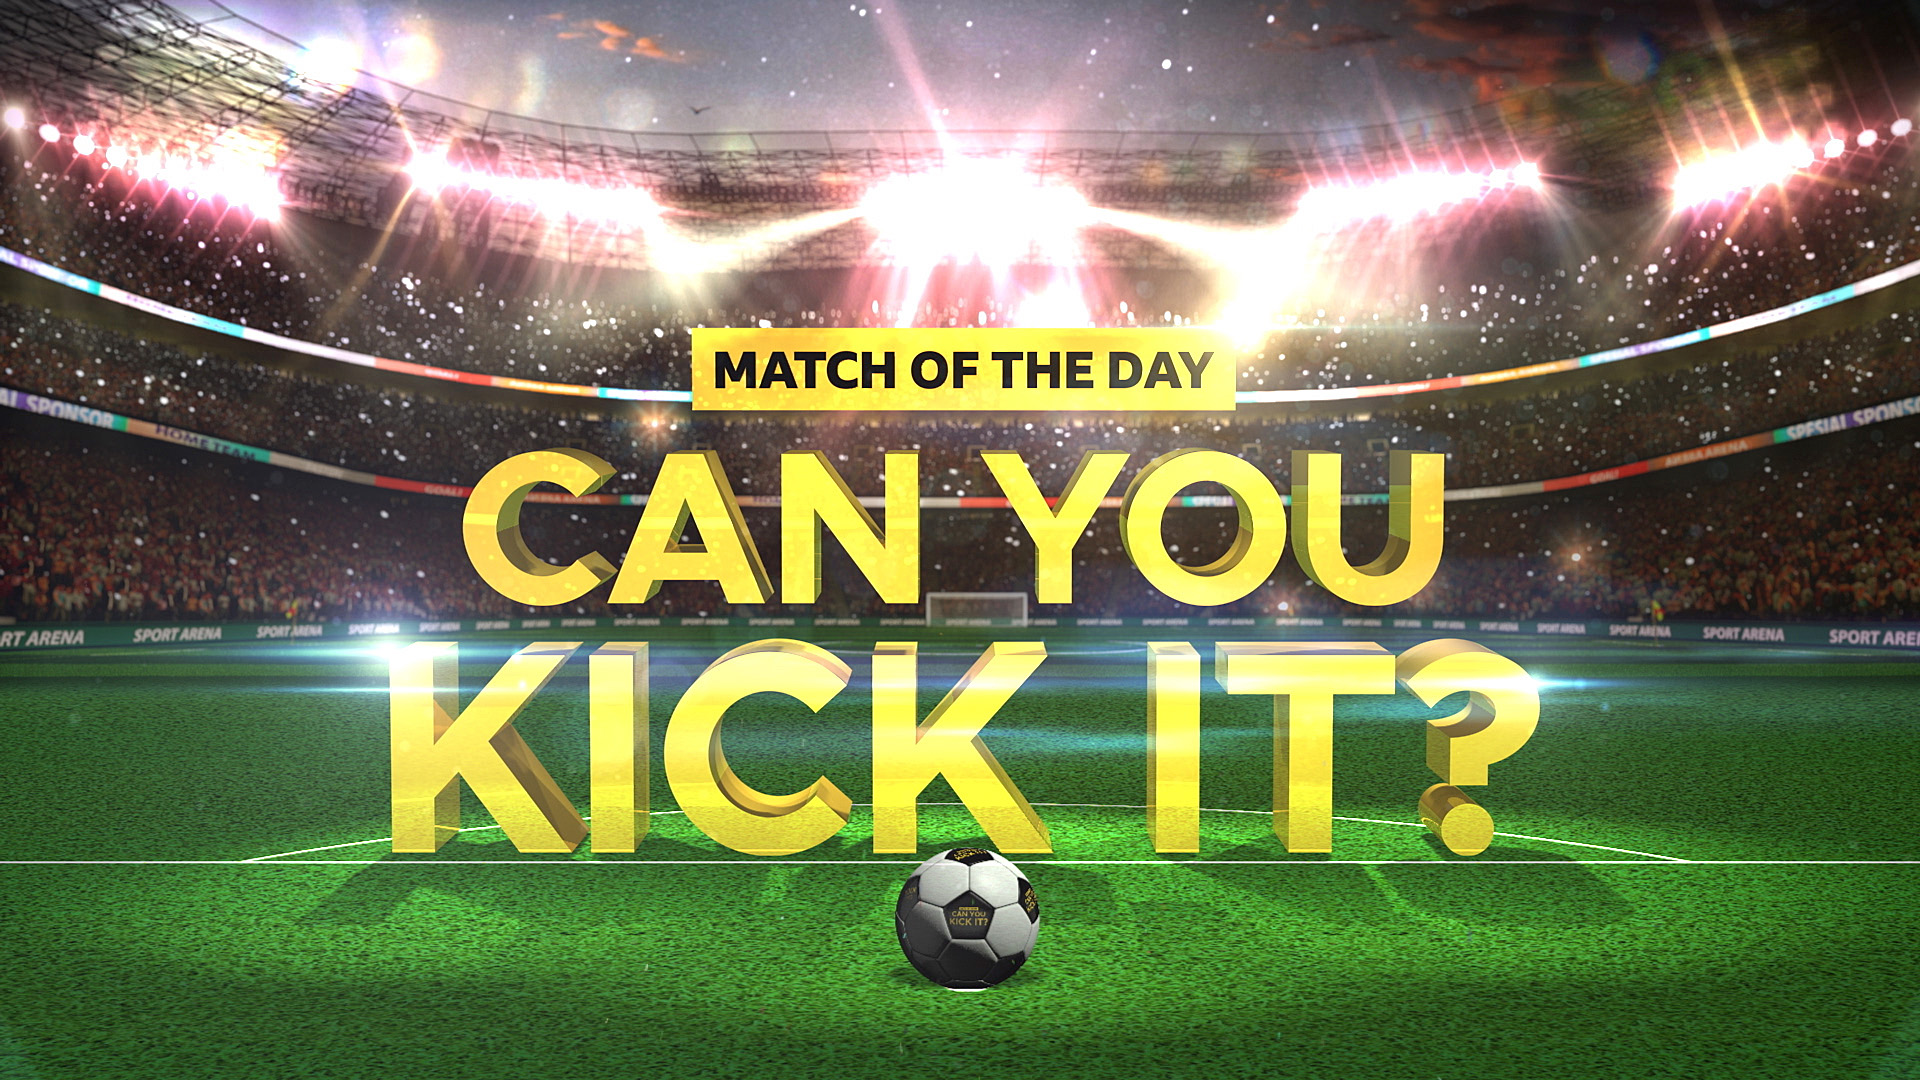 BBC Match of the Day: Can You Kick It?